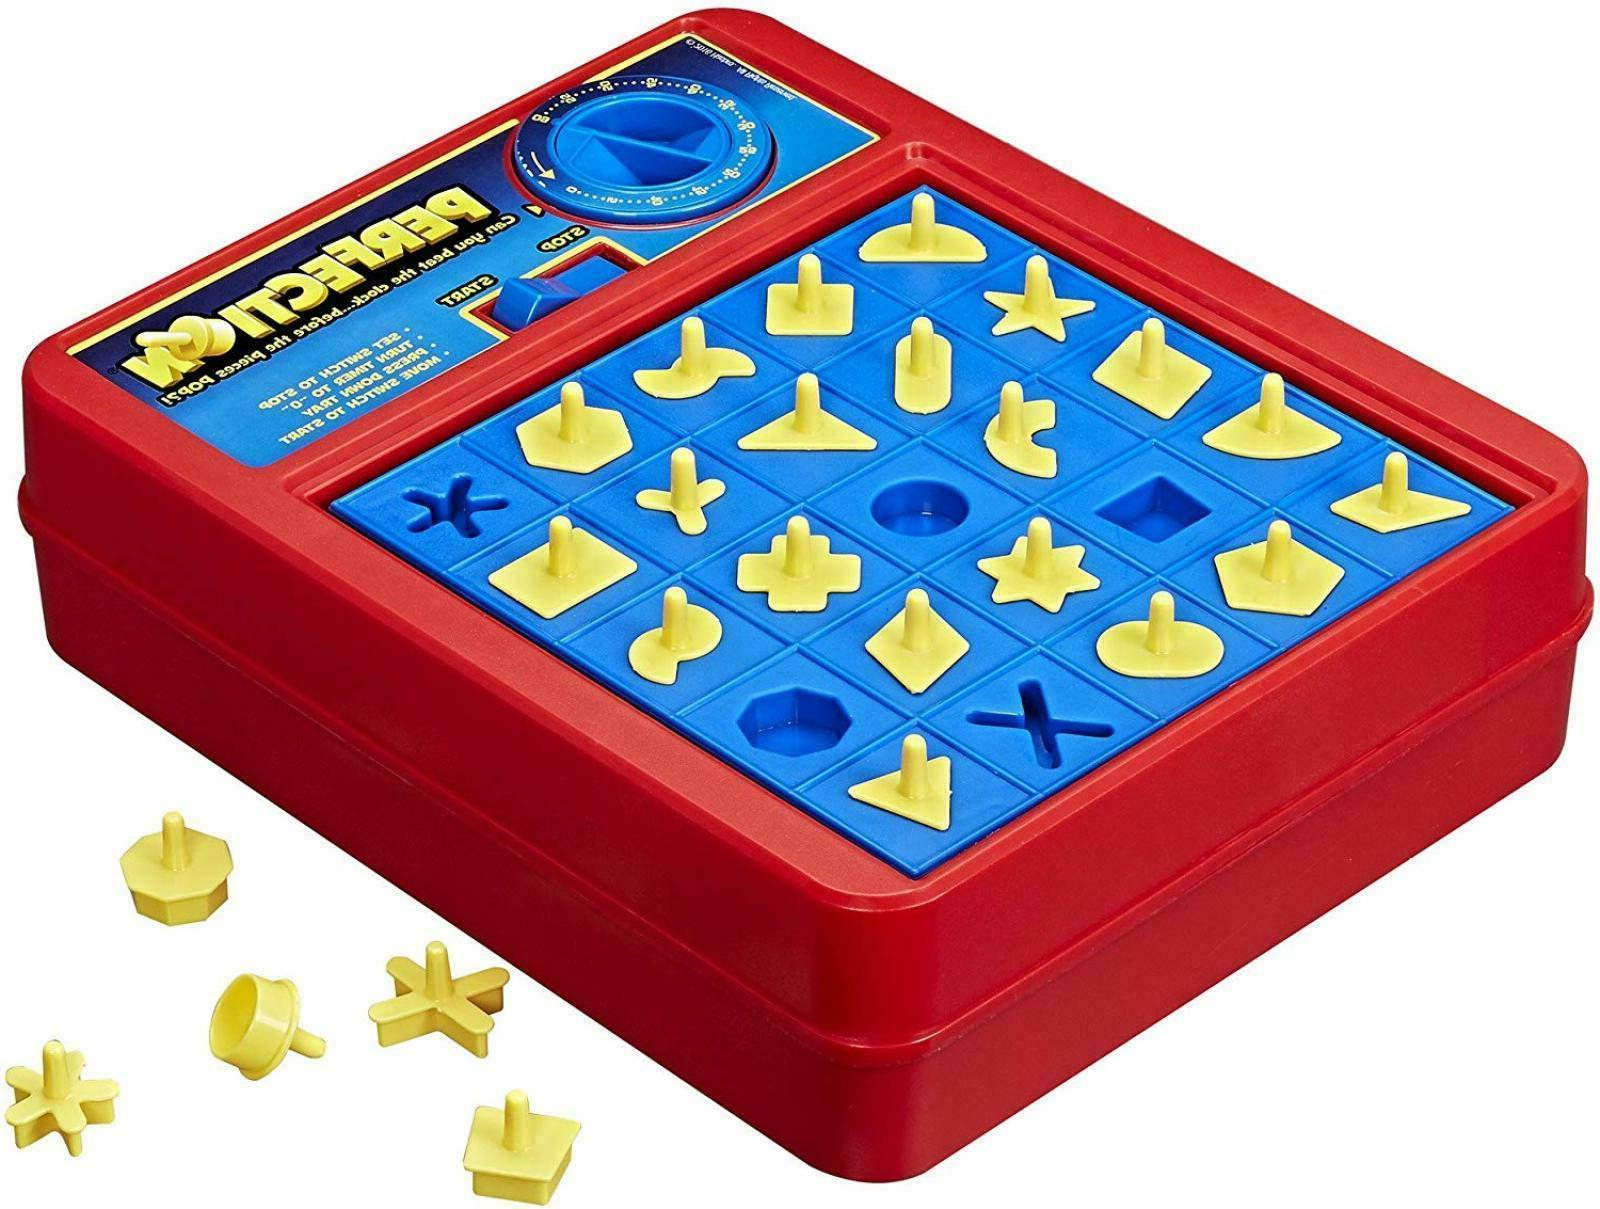 Perfection Game Original Version Play Solo Or With Friends T